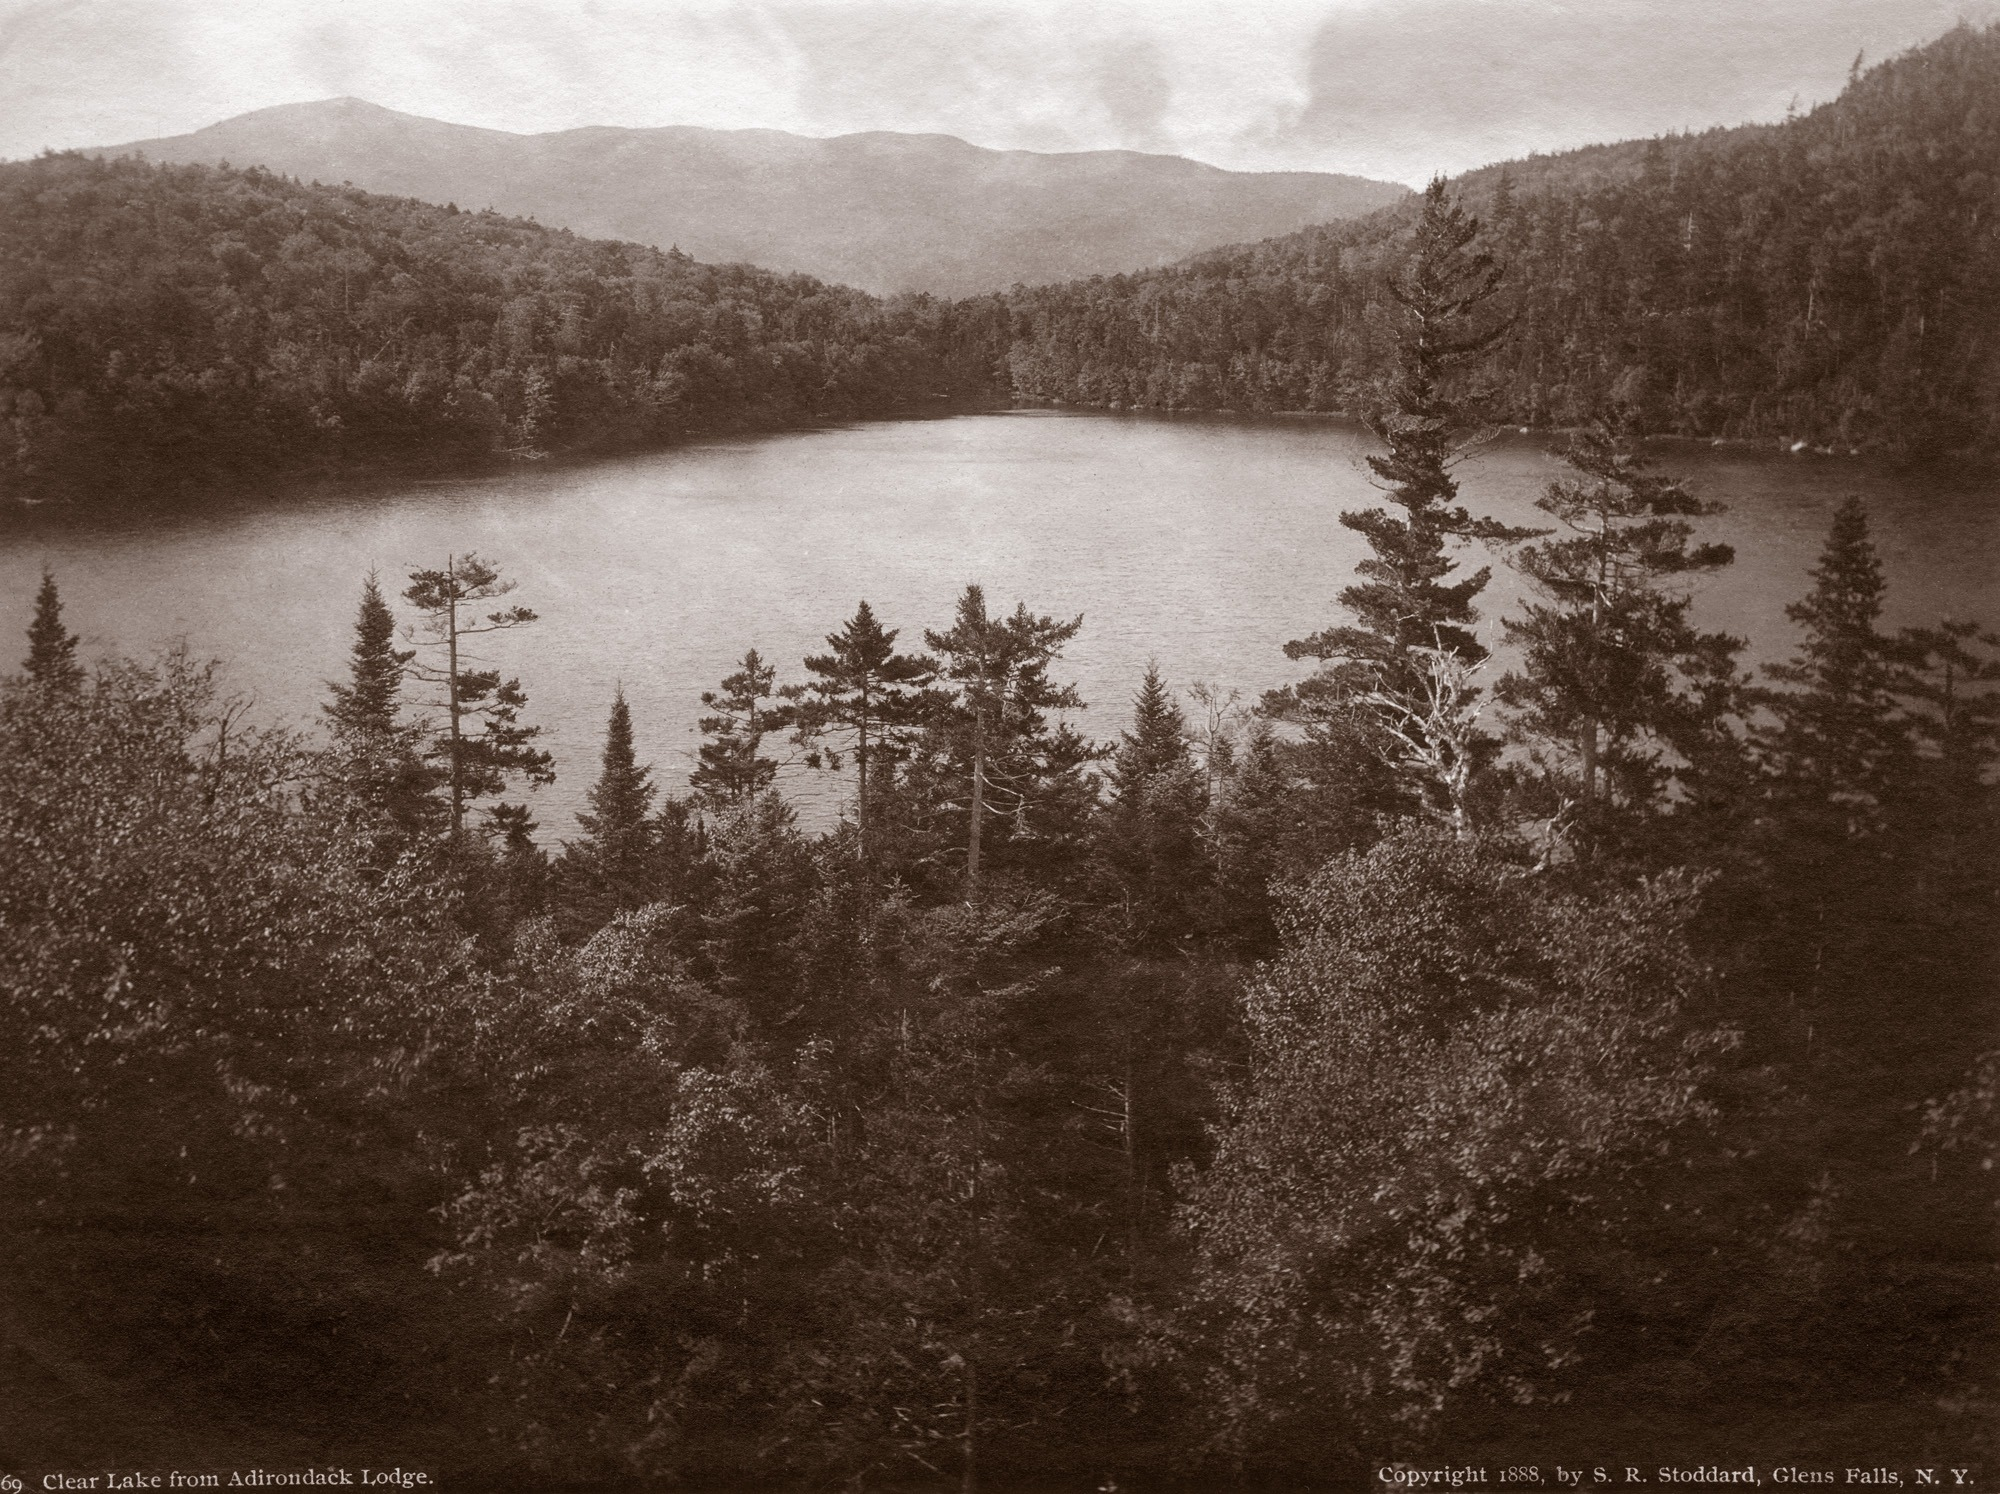 view of mountains from across a small lake